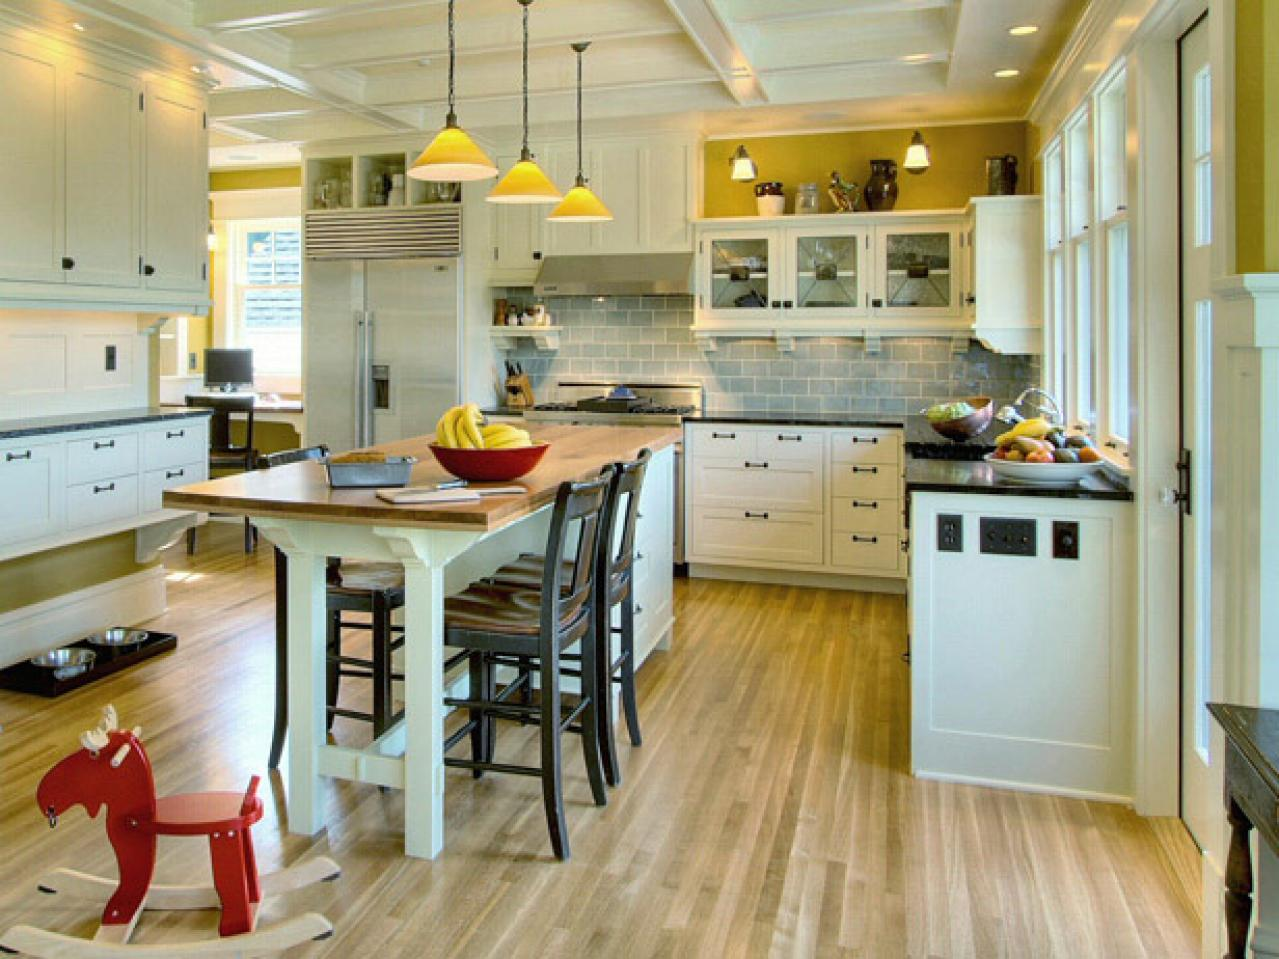 10 Kitchen Islands Kitchen Ideas Design With Cabinets